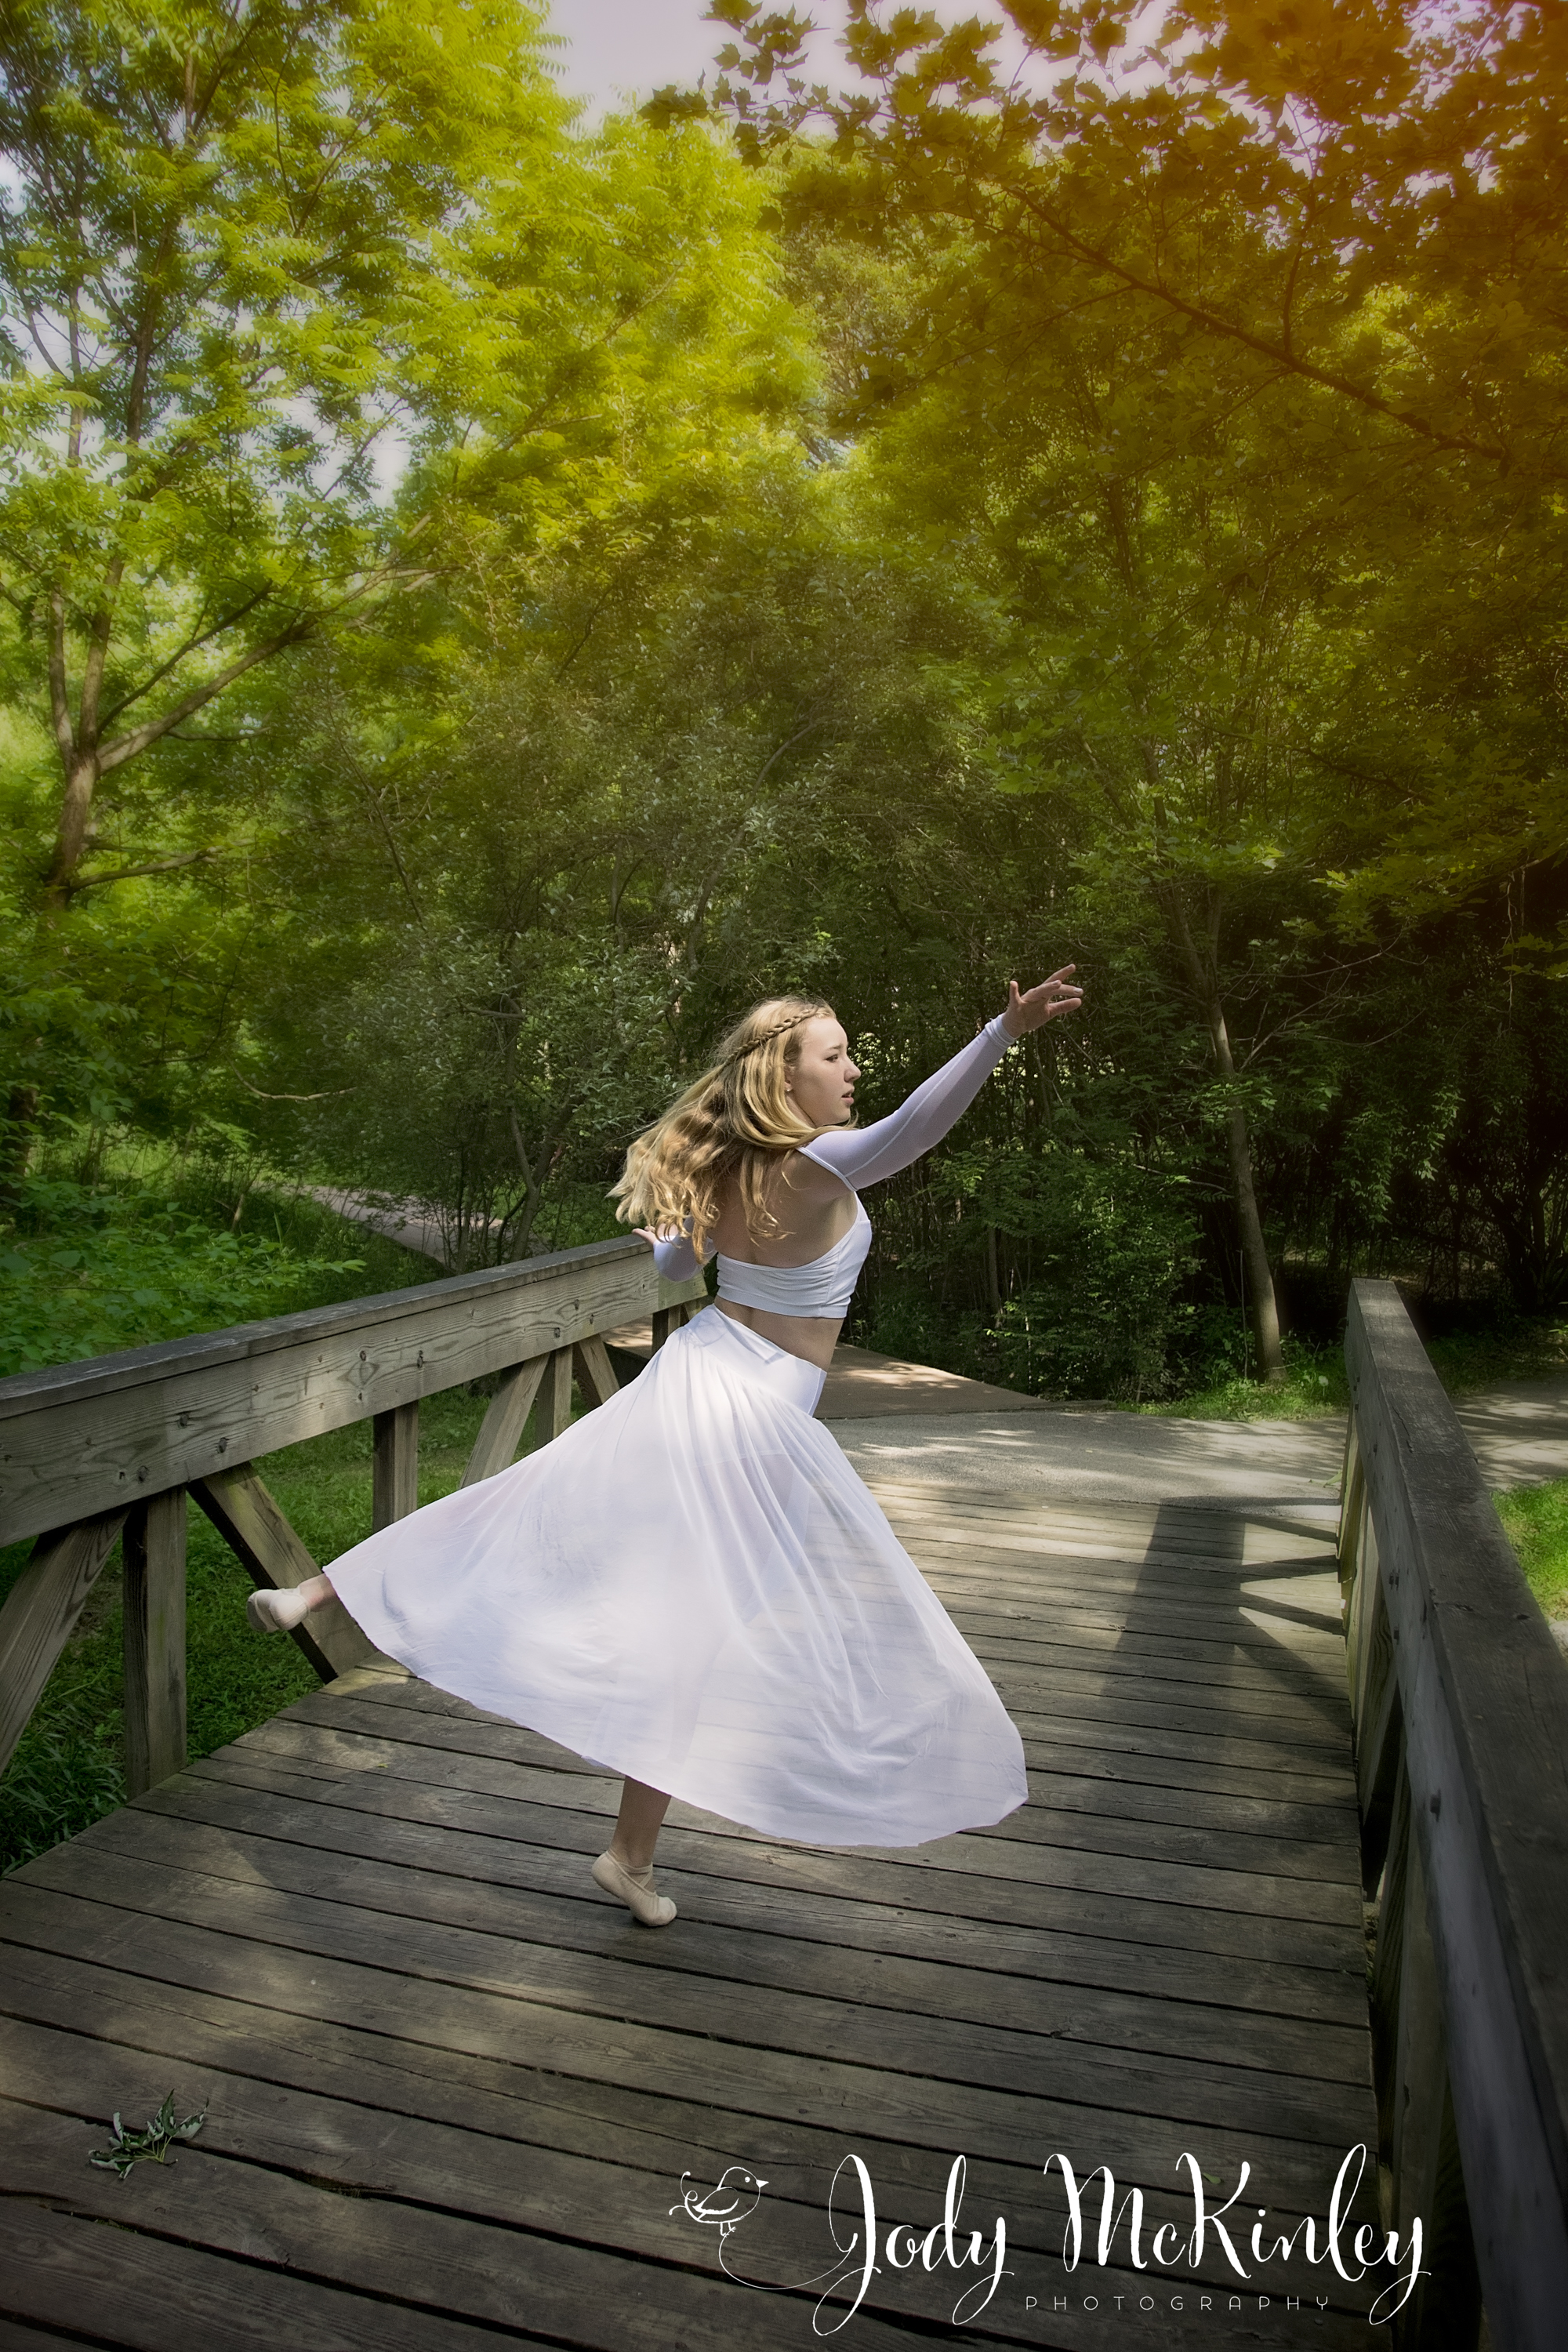 photo of young lady in graceful dance pose